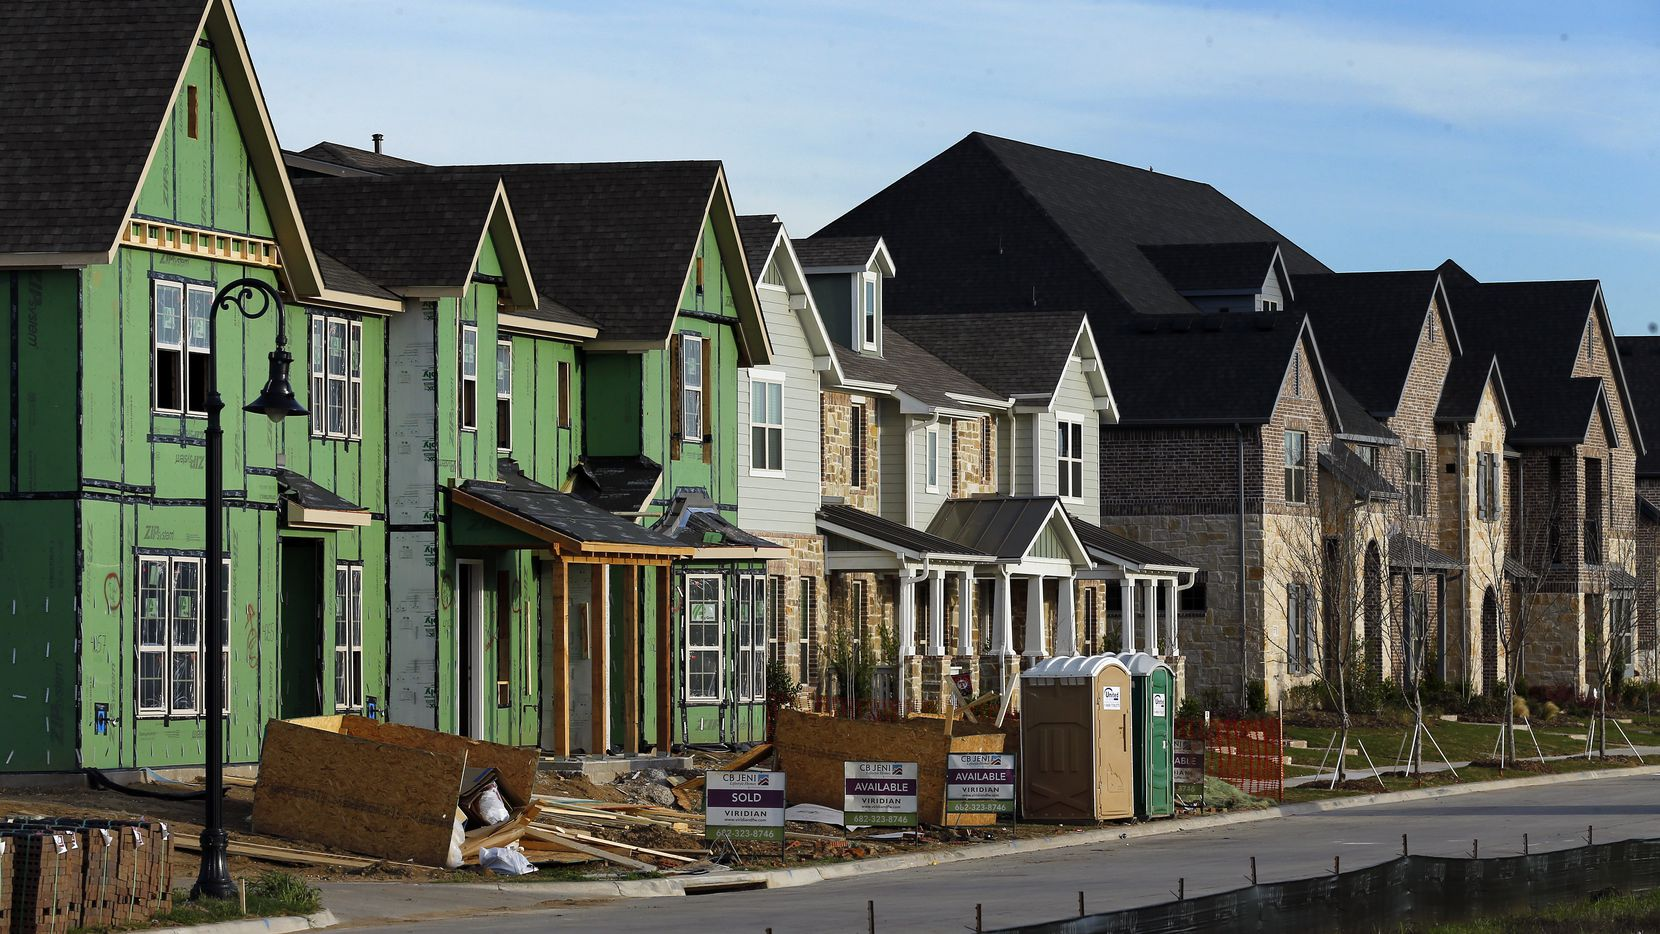 The homebuilding market is booming in Texas and the U.S., but the state still reported a net decline in construction jobs -- down 2,300 from January to February. The pandemic has had a big impact on nonresidential construction.